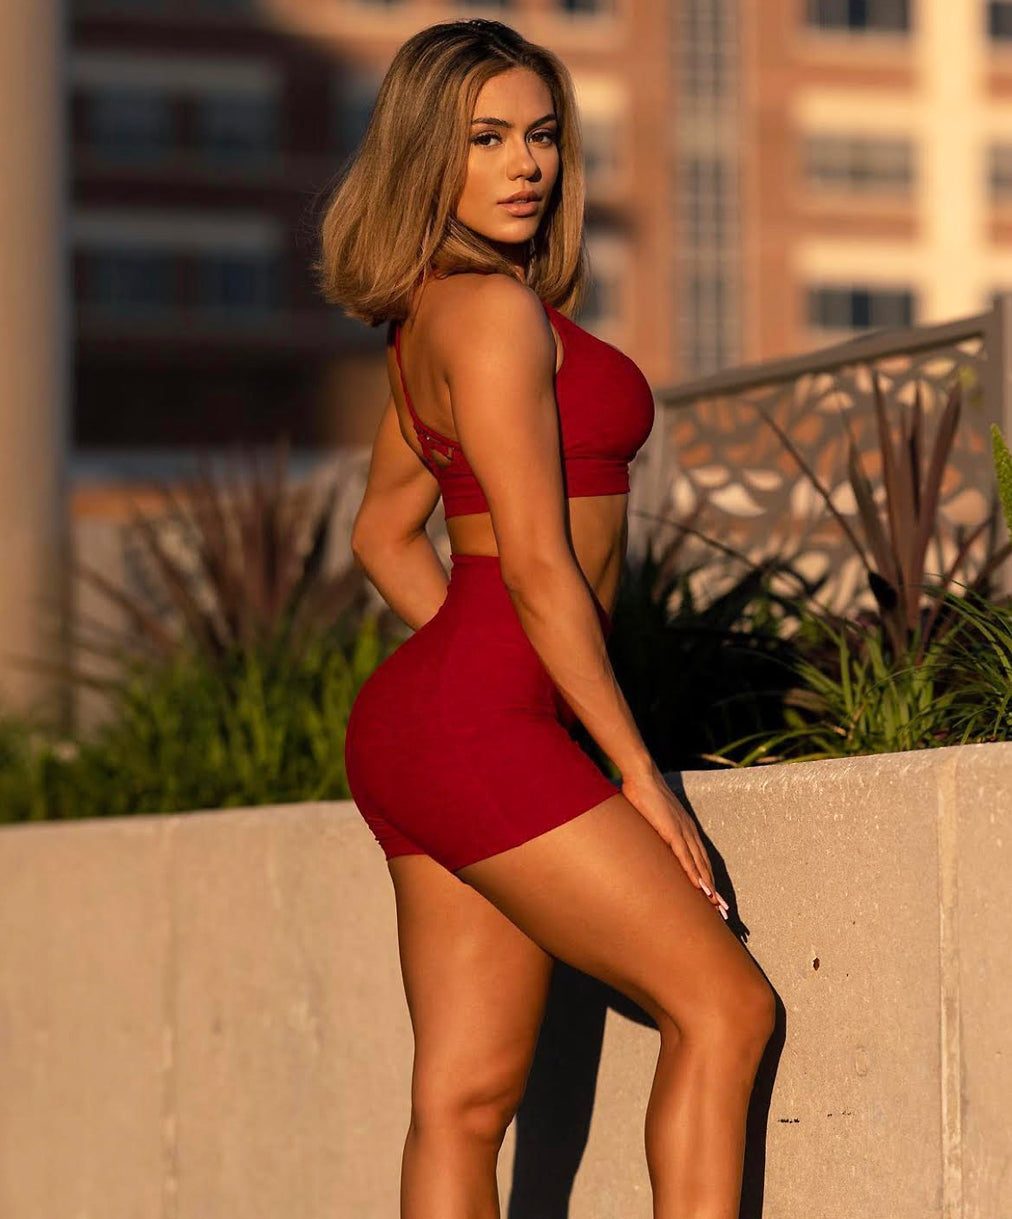 model in red shorts and matching red active top